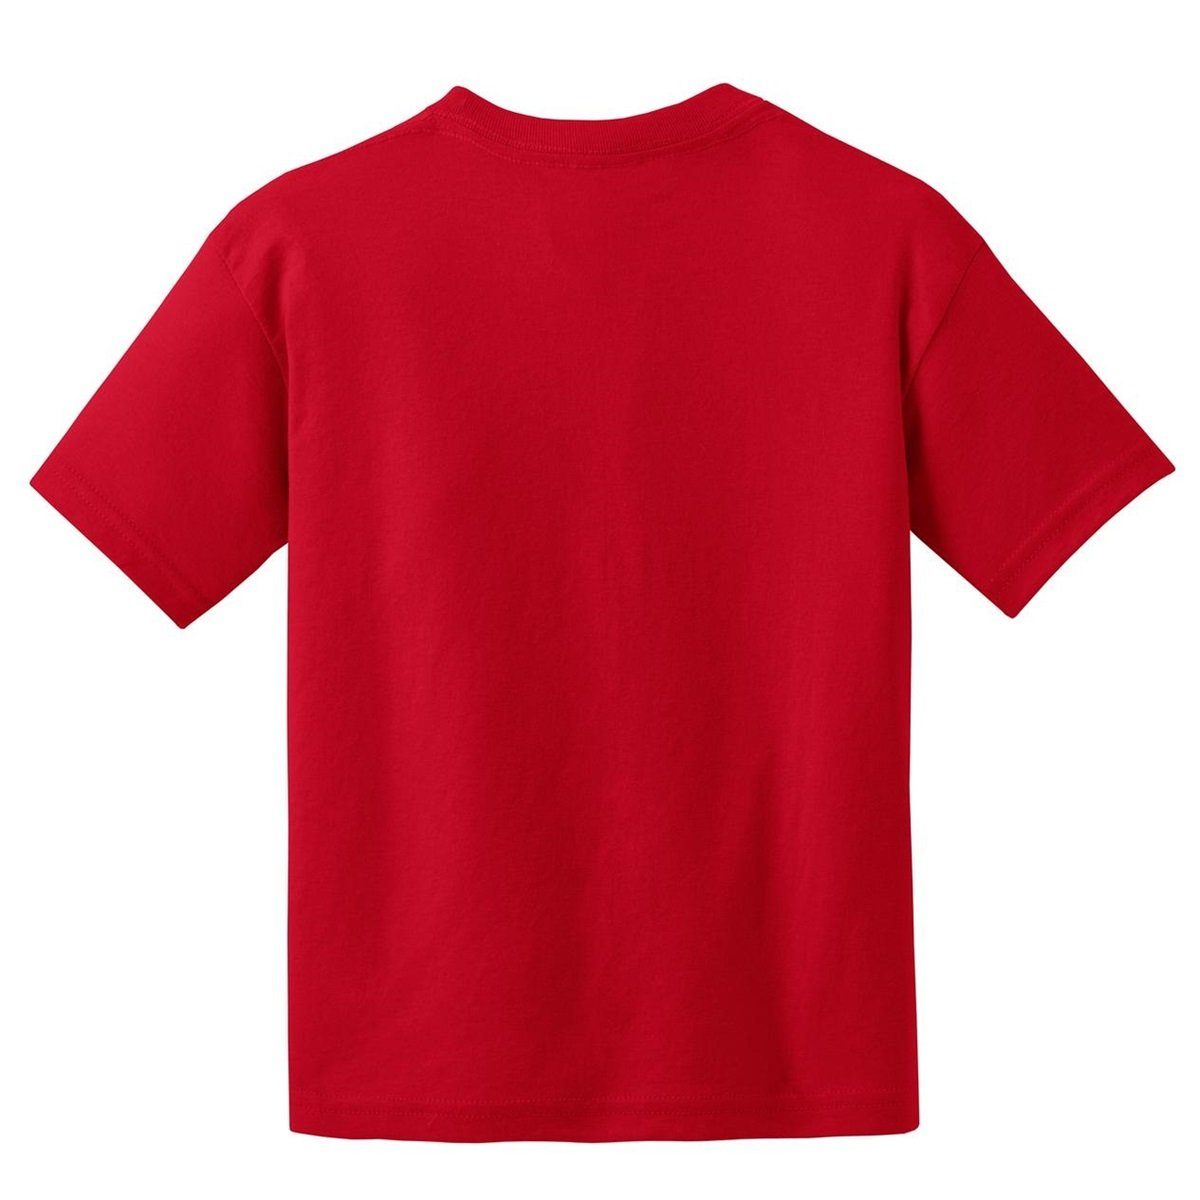 Gildan 8000b youth dryblend t shirt red for Where are gildan t shirts made